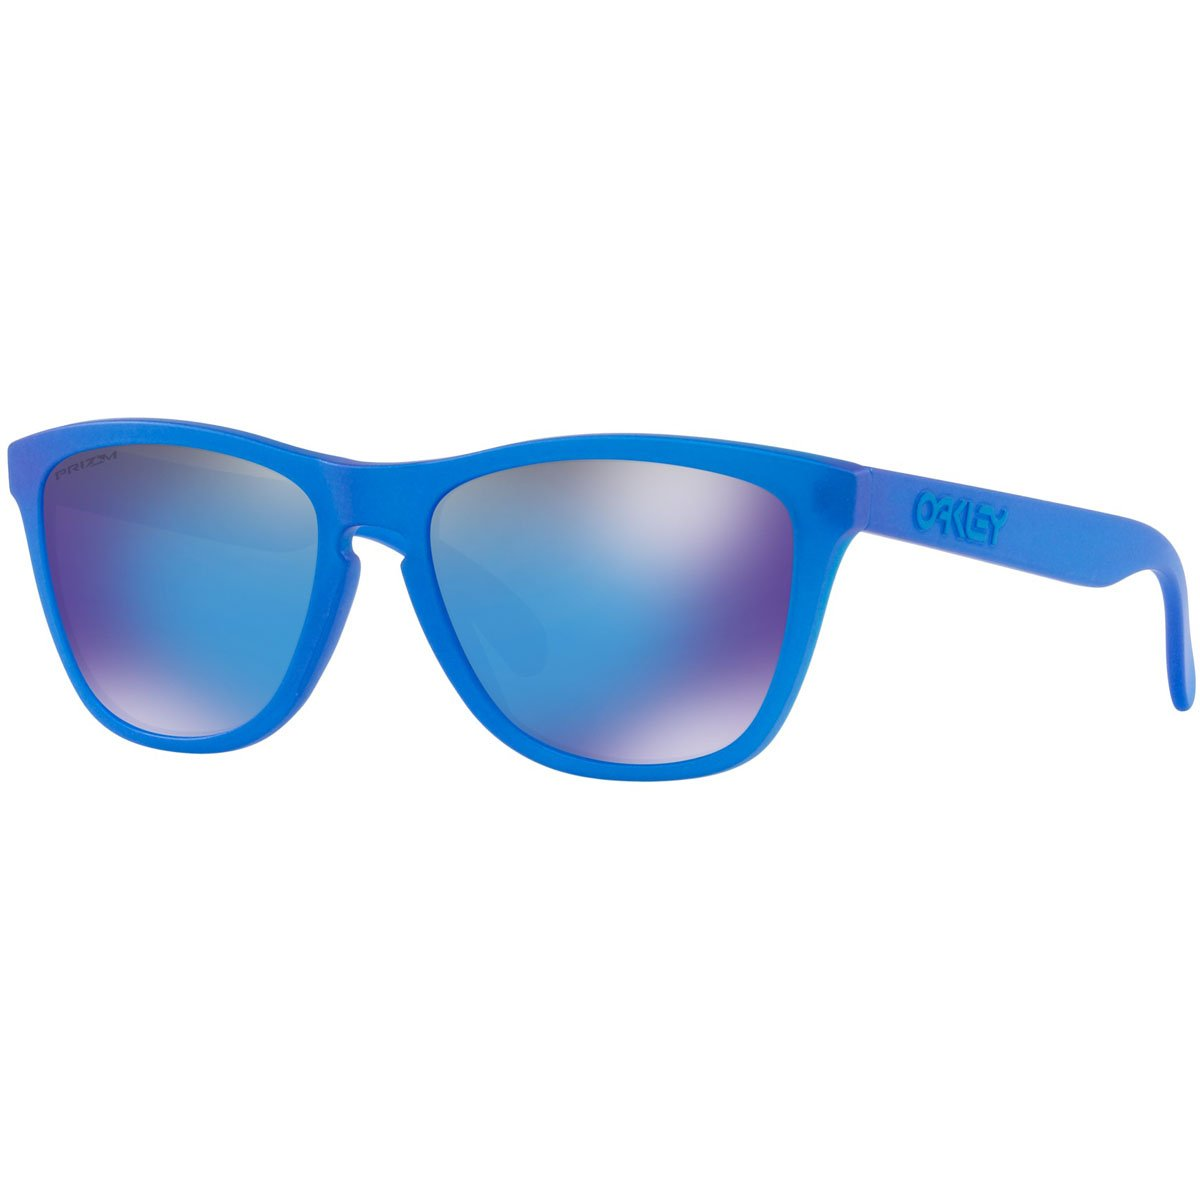 Oakley Frogskins Sunglasses,X-Ray Blue